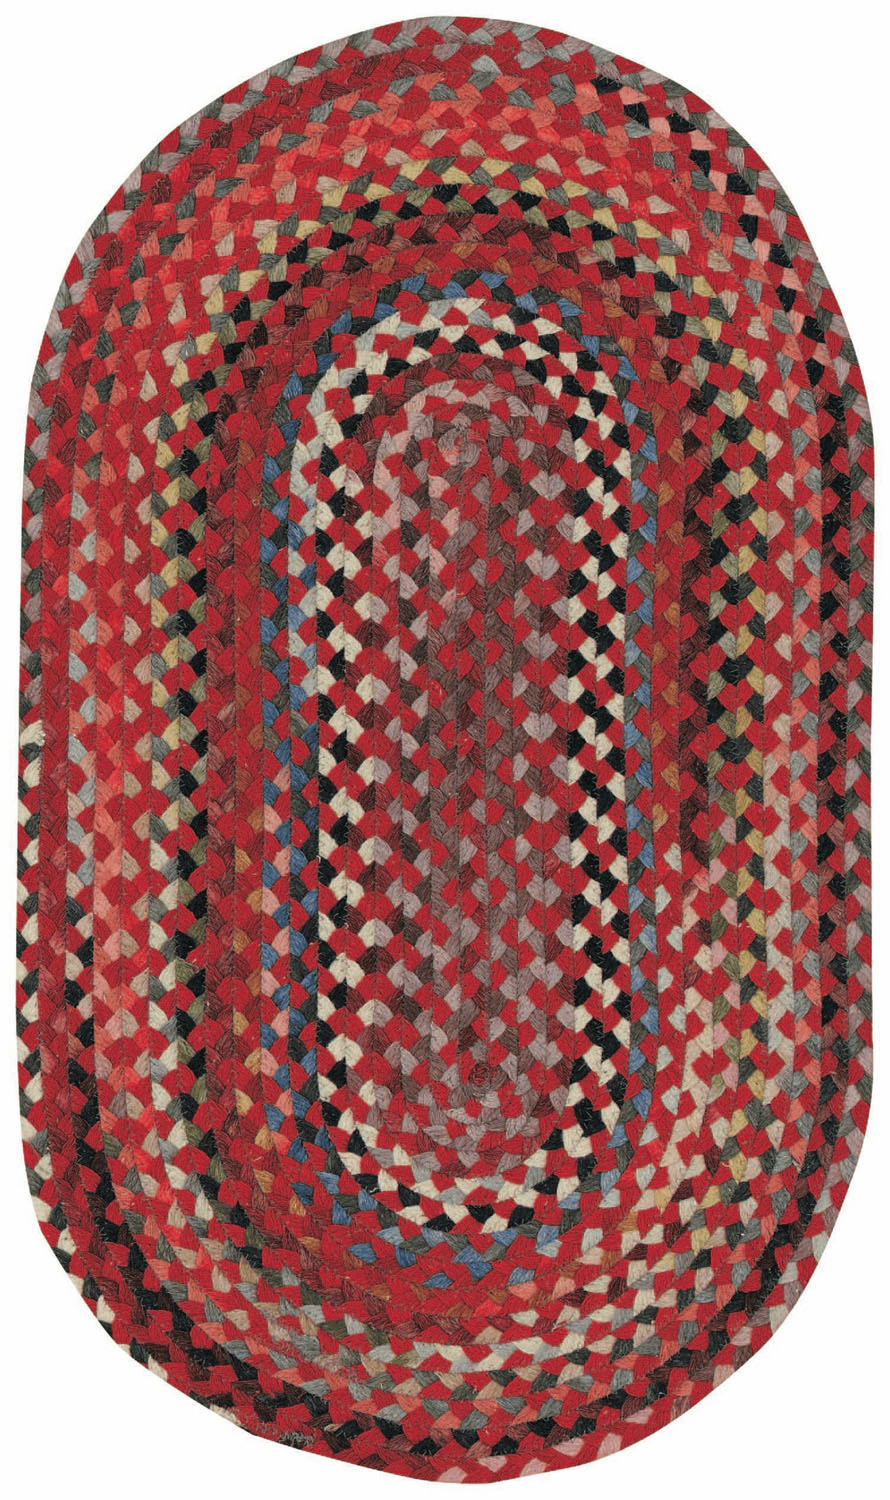 Hand-Braided Medium Red Rug